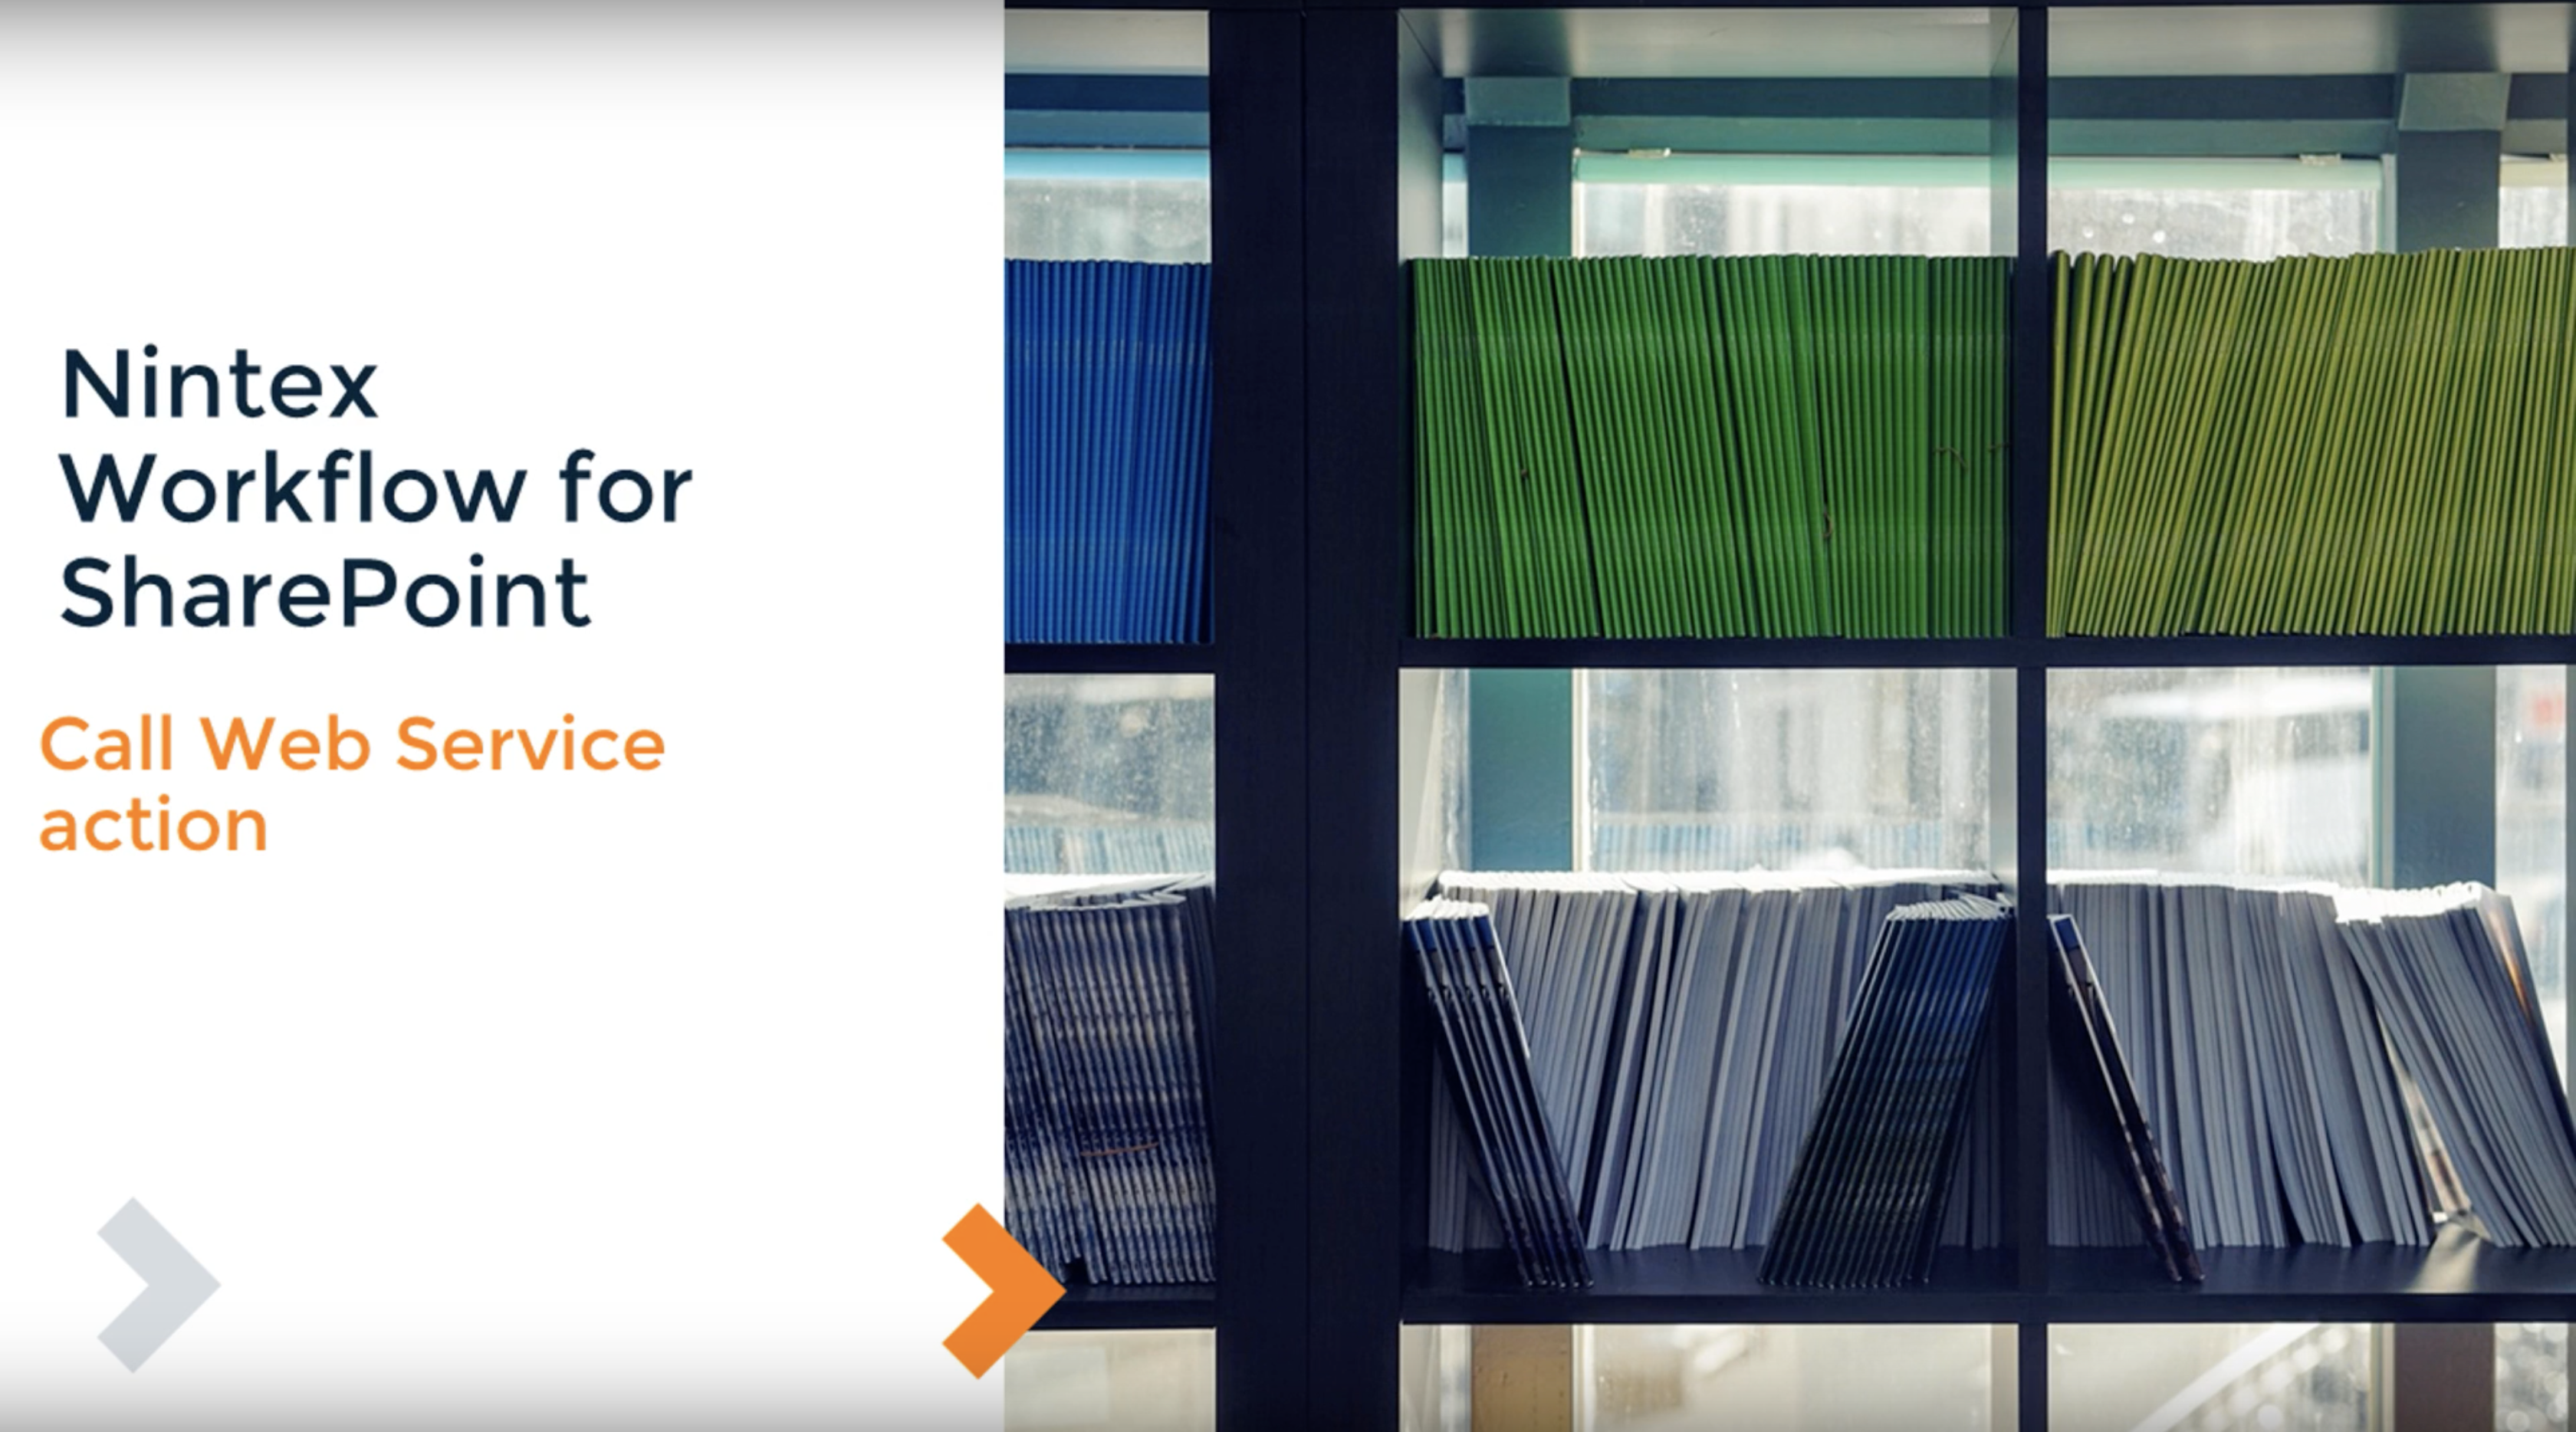 How to: Call Web Service Action in Nintex Workflow for SharePoint